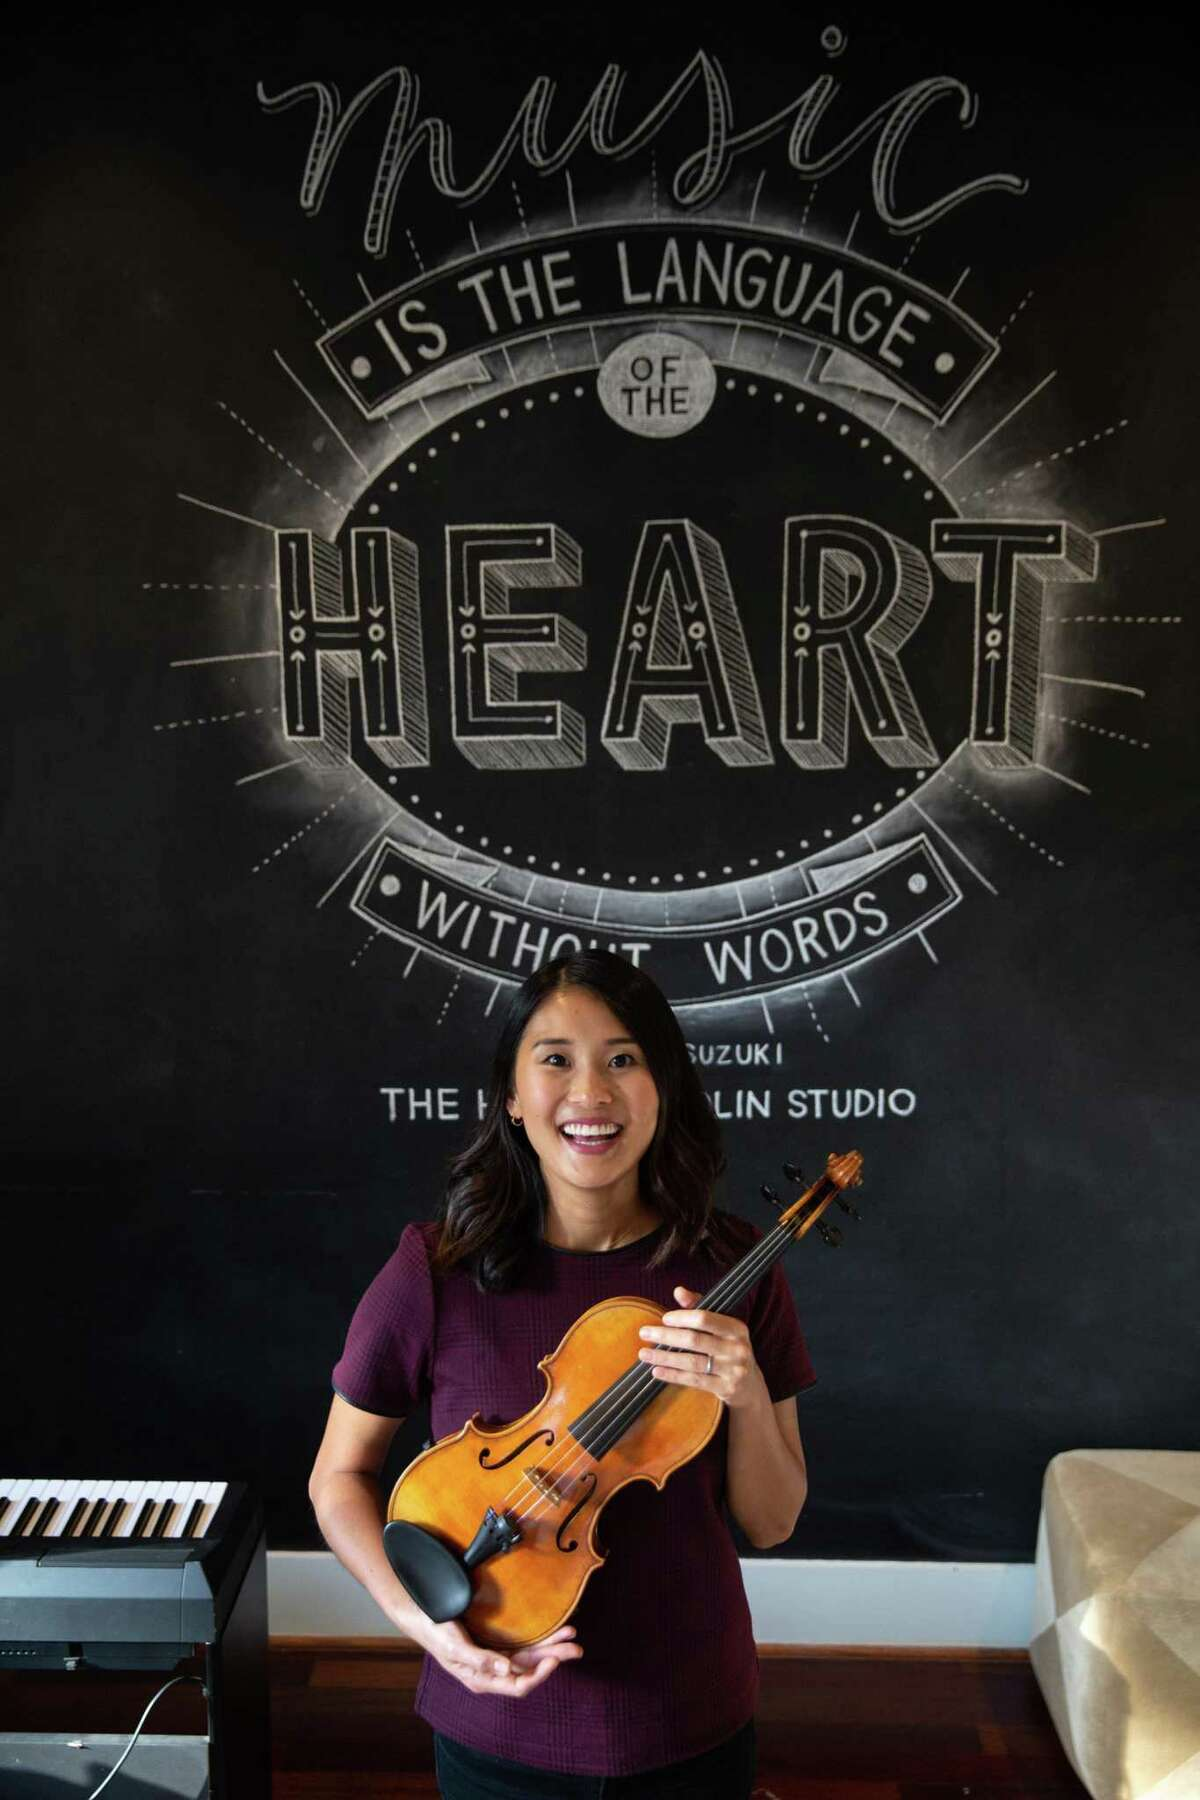 Kaori Barvin, owner of The Heights Violin Studio, poses for a portrait with her violin on Oct. 14, 2020. Barvin's violin studio is putting on a benefit concert on Nov. 8 for one of its student's father who is battling stage 4 colon cancer.